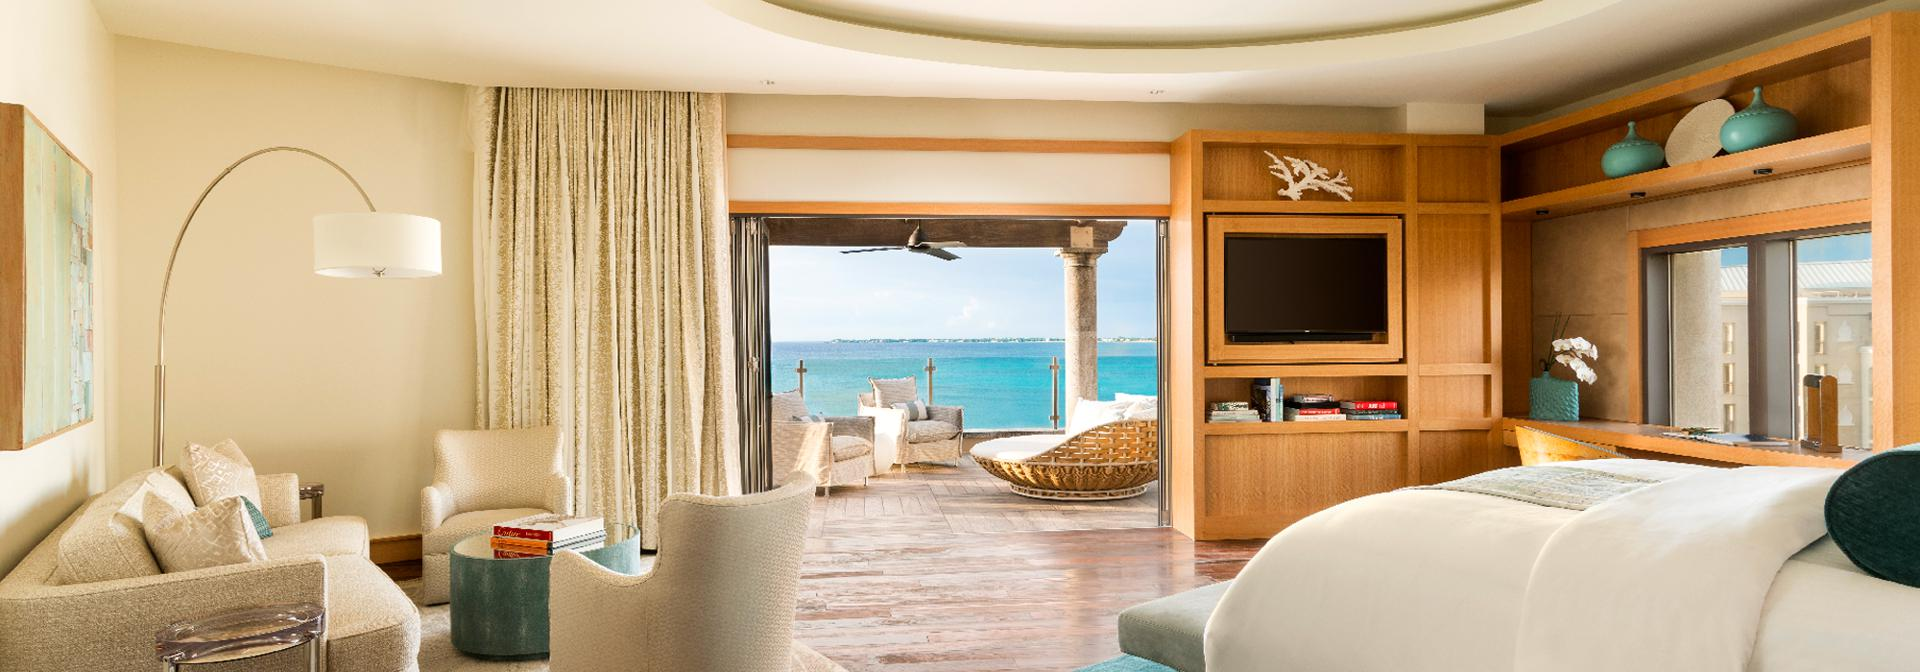 Ritz-Carlton Grand Cayman suite